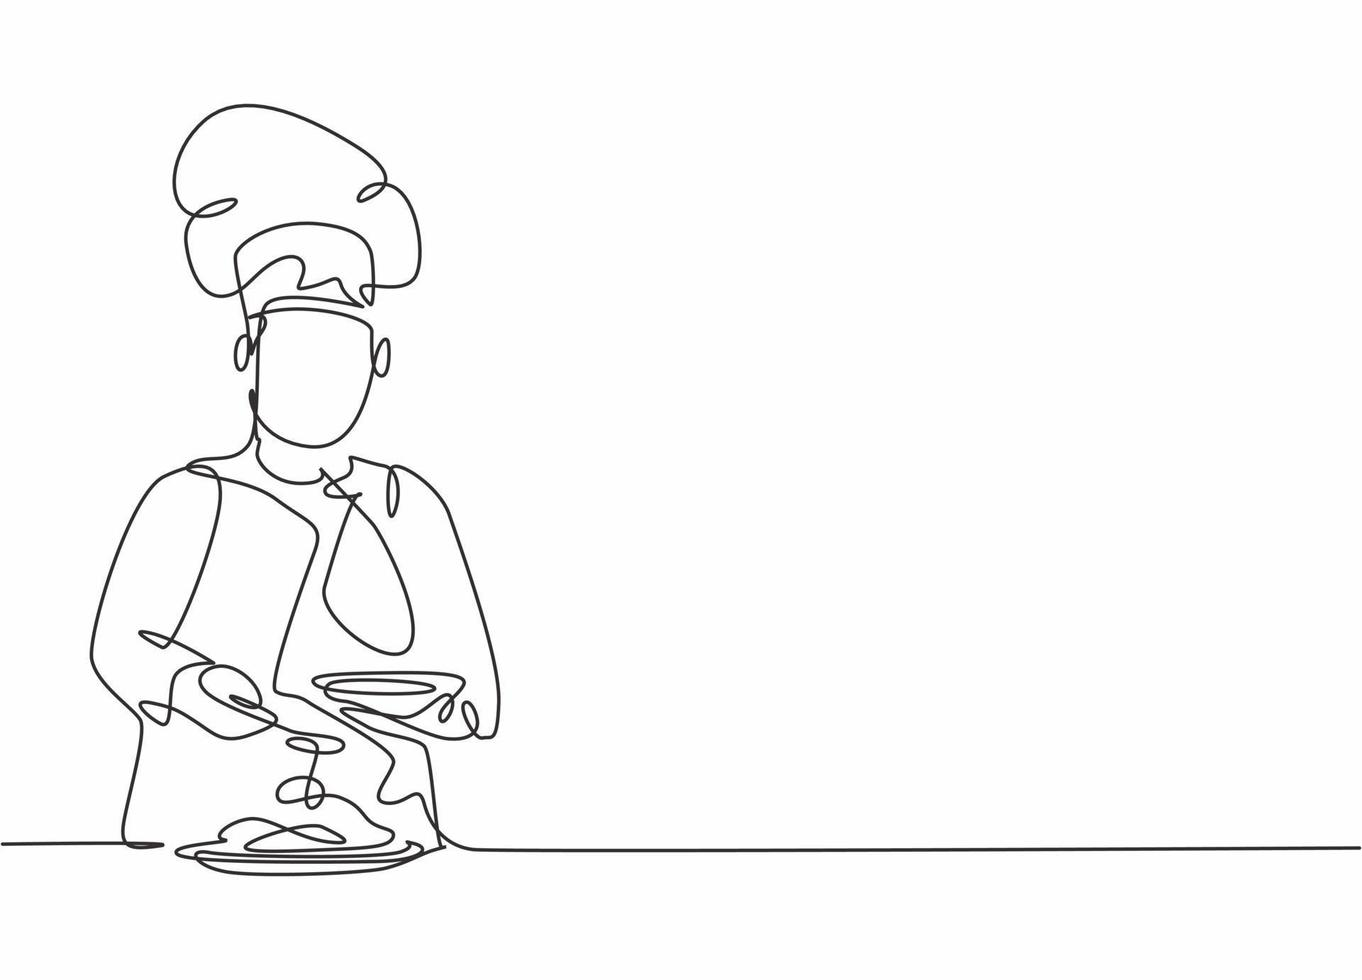 Single continuous line drawing of young happy male chef pouring sauce on main dish to serve to customer. Preparing healthy food concept one line drawing design vector minimalism illustration